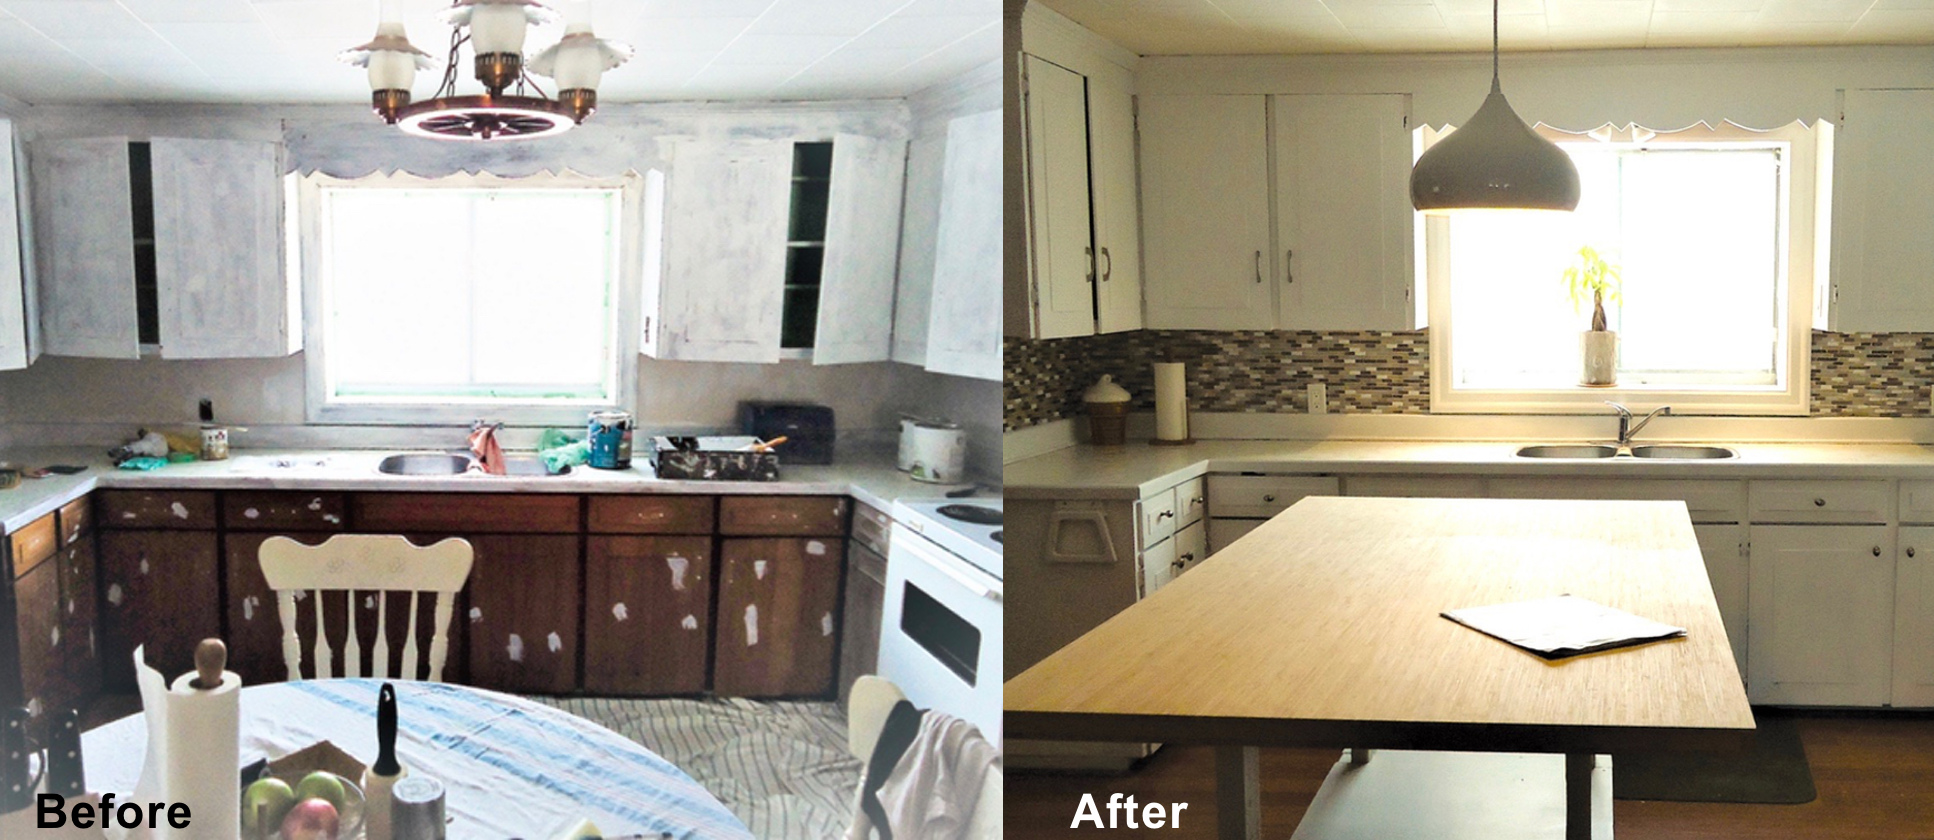 A kitchen renovation is an expensive undertaking. If your budget doesn't allow for the big reno and the footprint is good tackle the surfaces and reuse, repaint, relight…use your imagination.